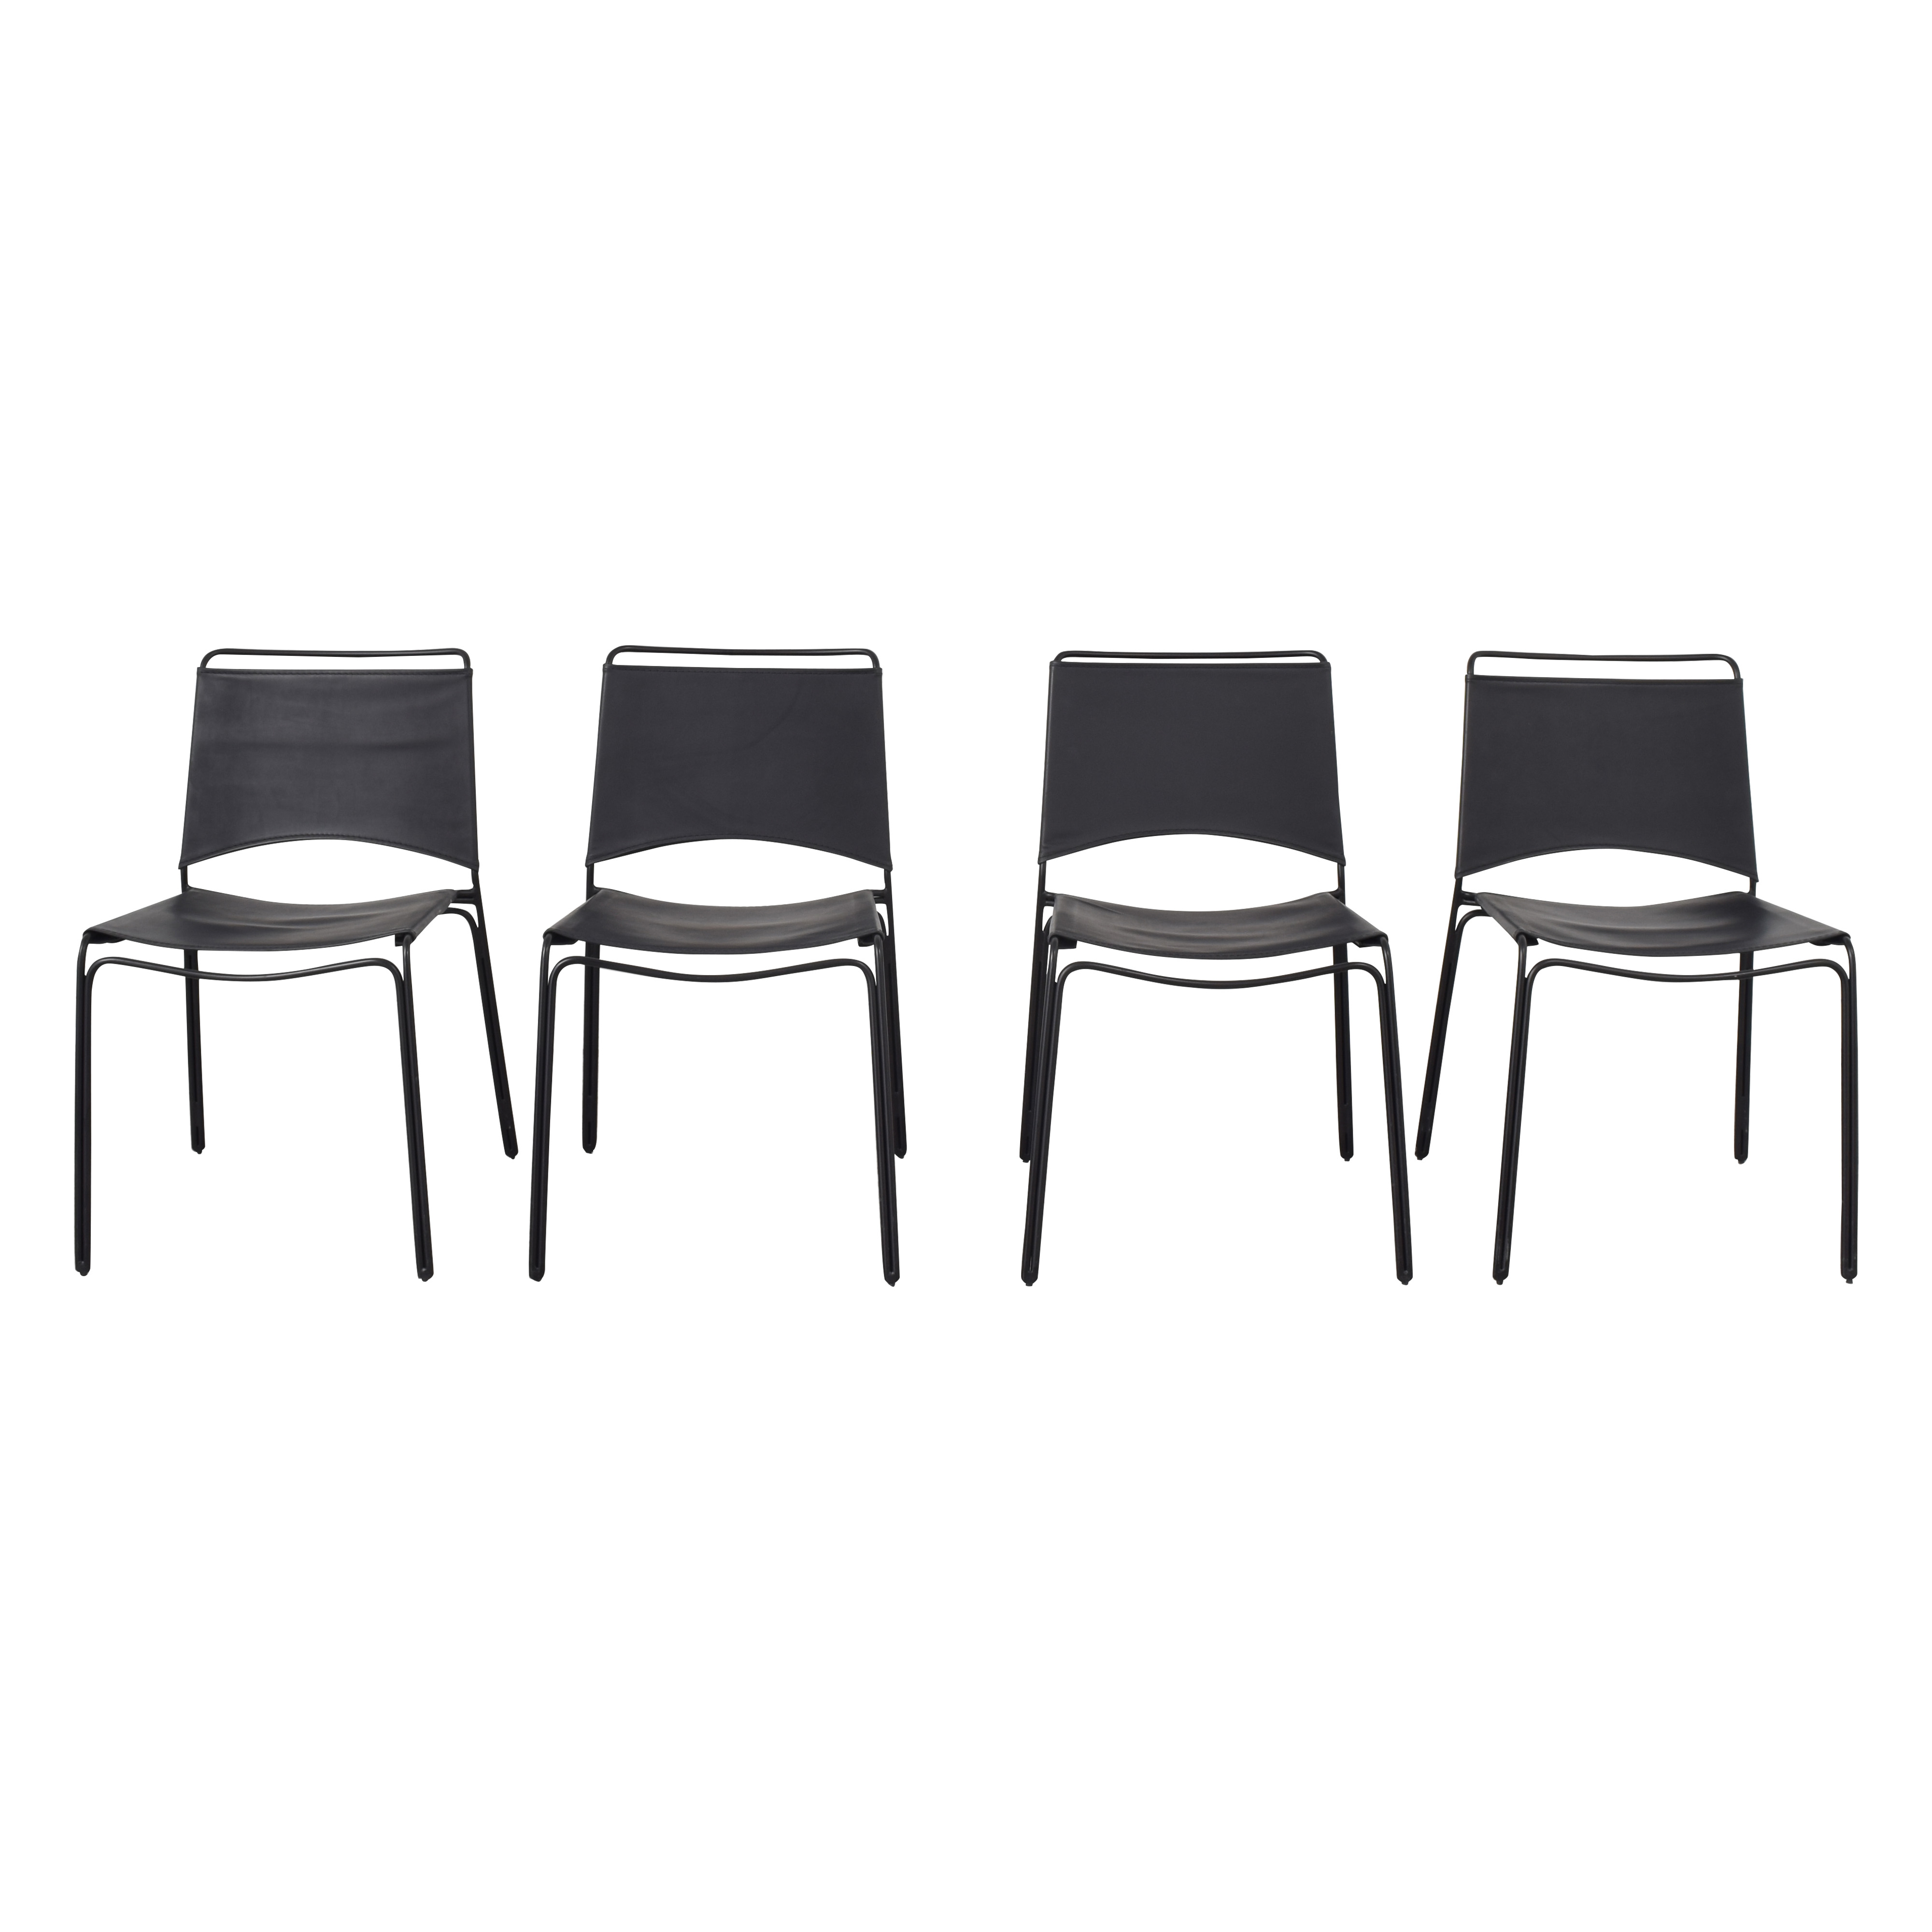 Industry West Trace Dining Chairs Industry West